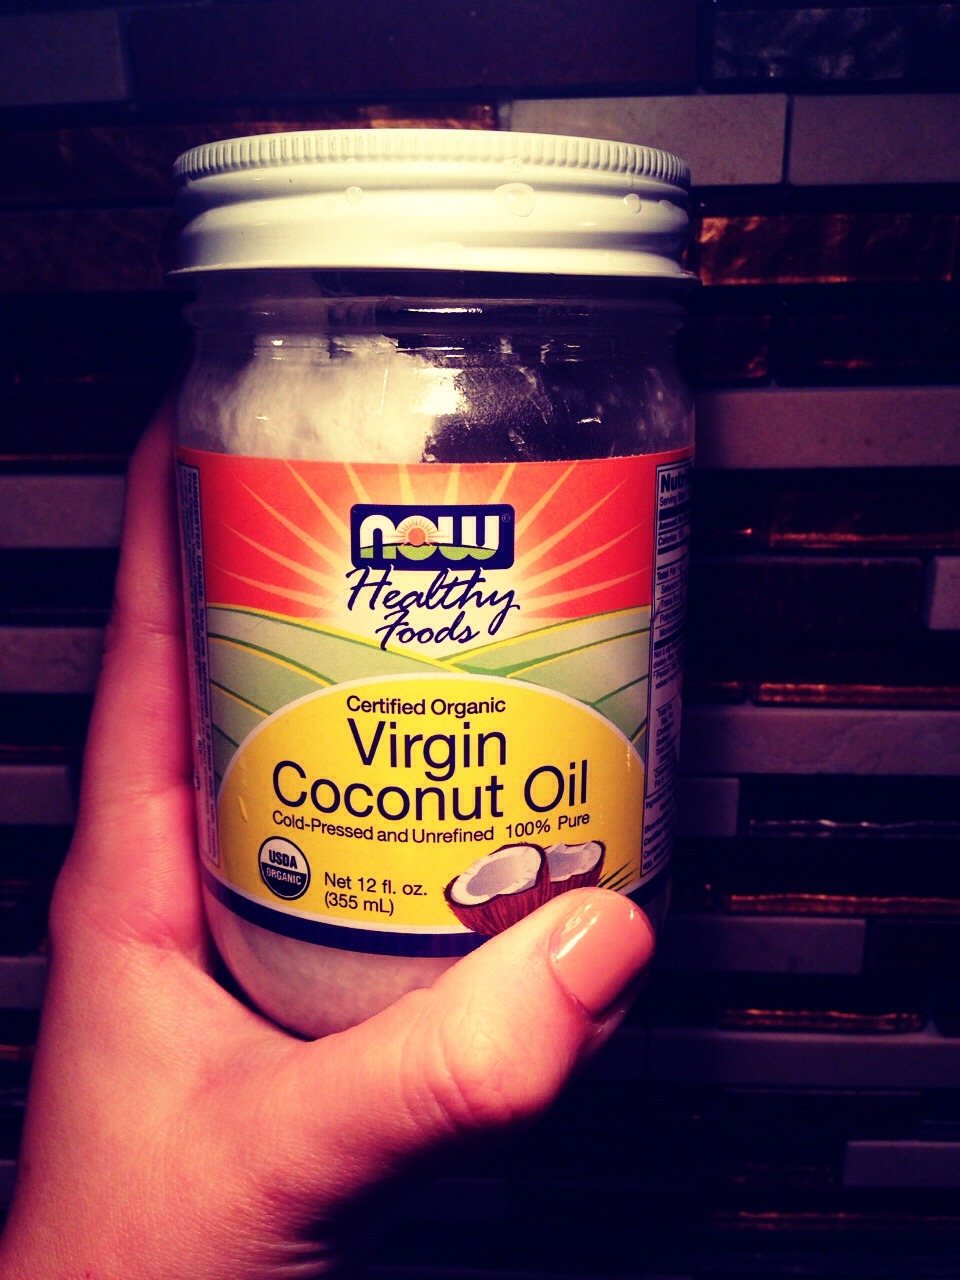 You can buy coconut oil at your local grocery store-I prefer the organic oil, this was purchased at Whole Foods